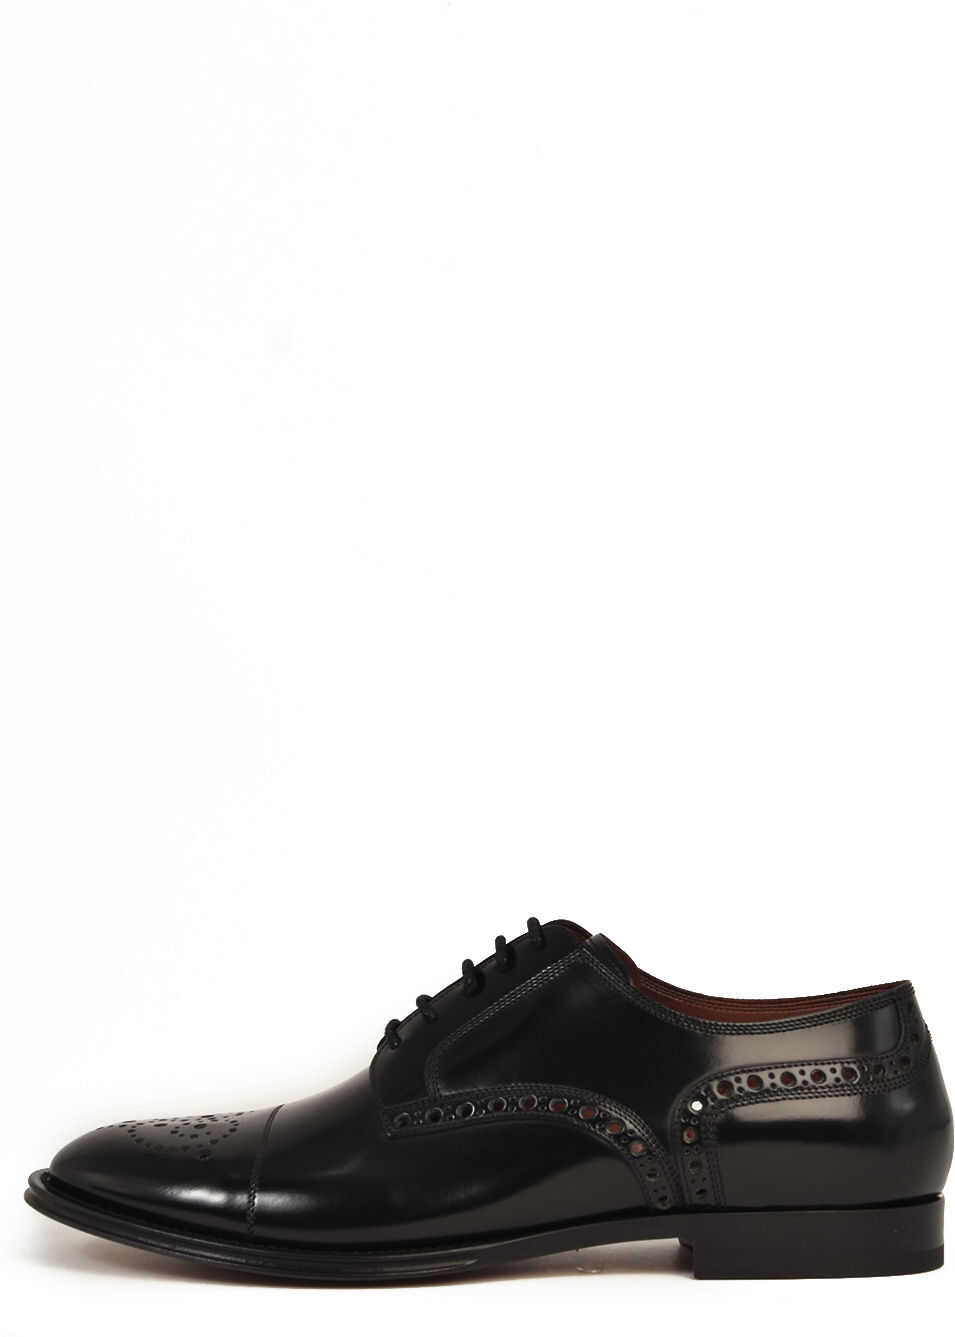 Dolce & Gabbana Duilio Leather Shoes Black